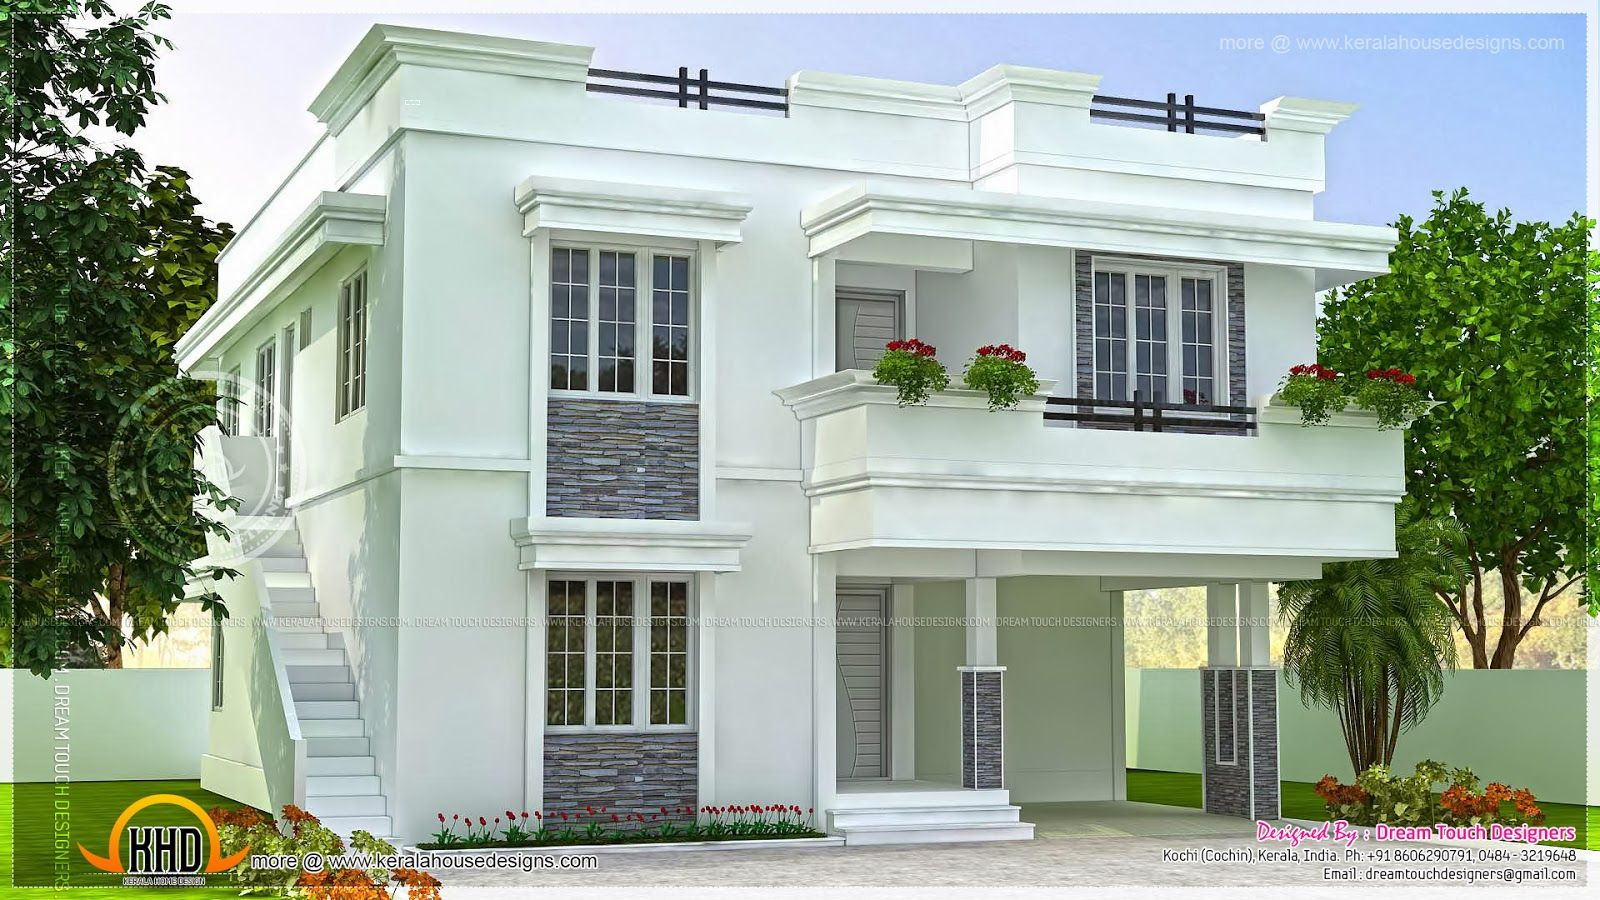 Inspirational Modern Beautiful Home Modern Beautiful Home Design Indian House with regard to Indian Home Exterior Design